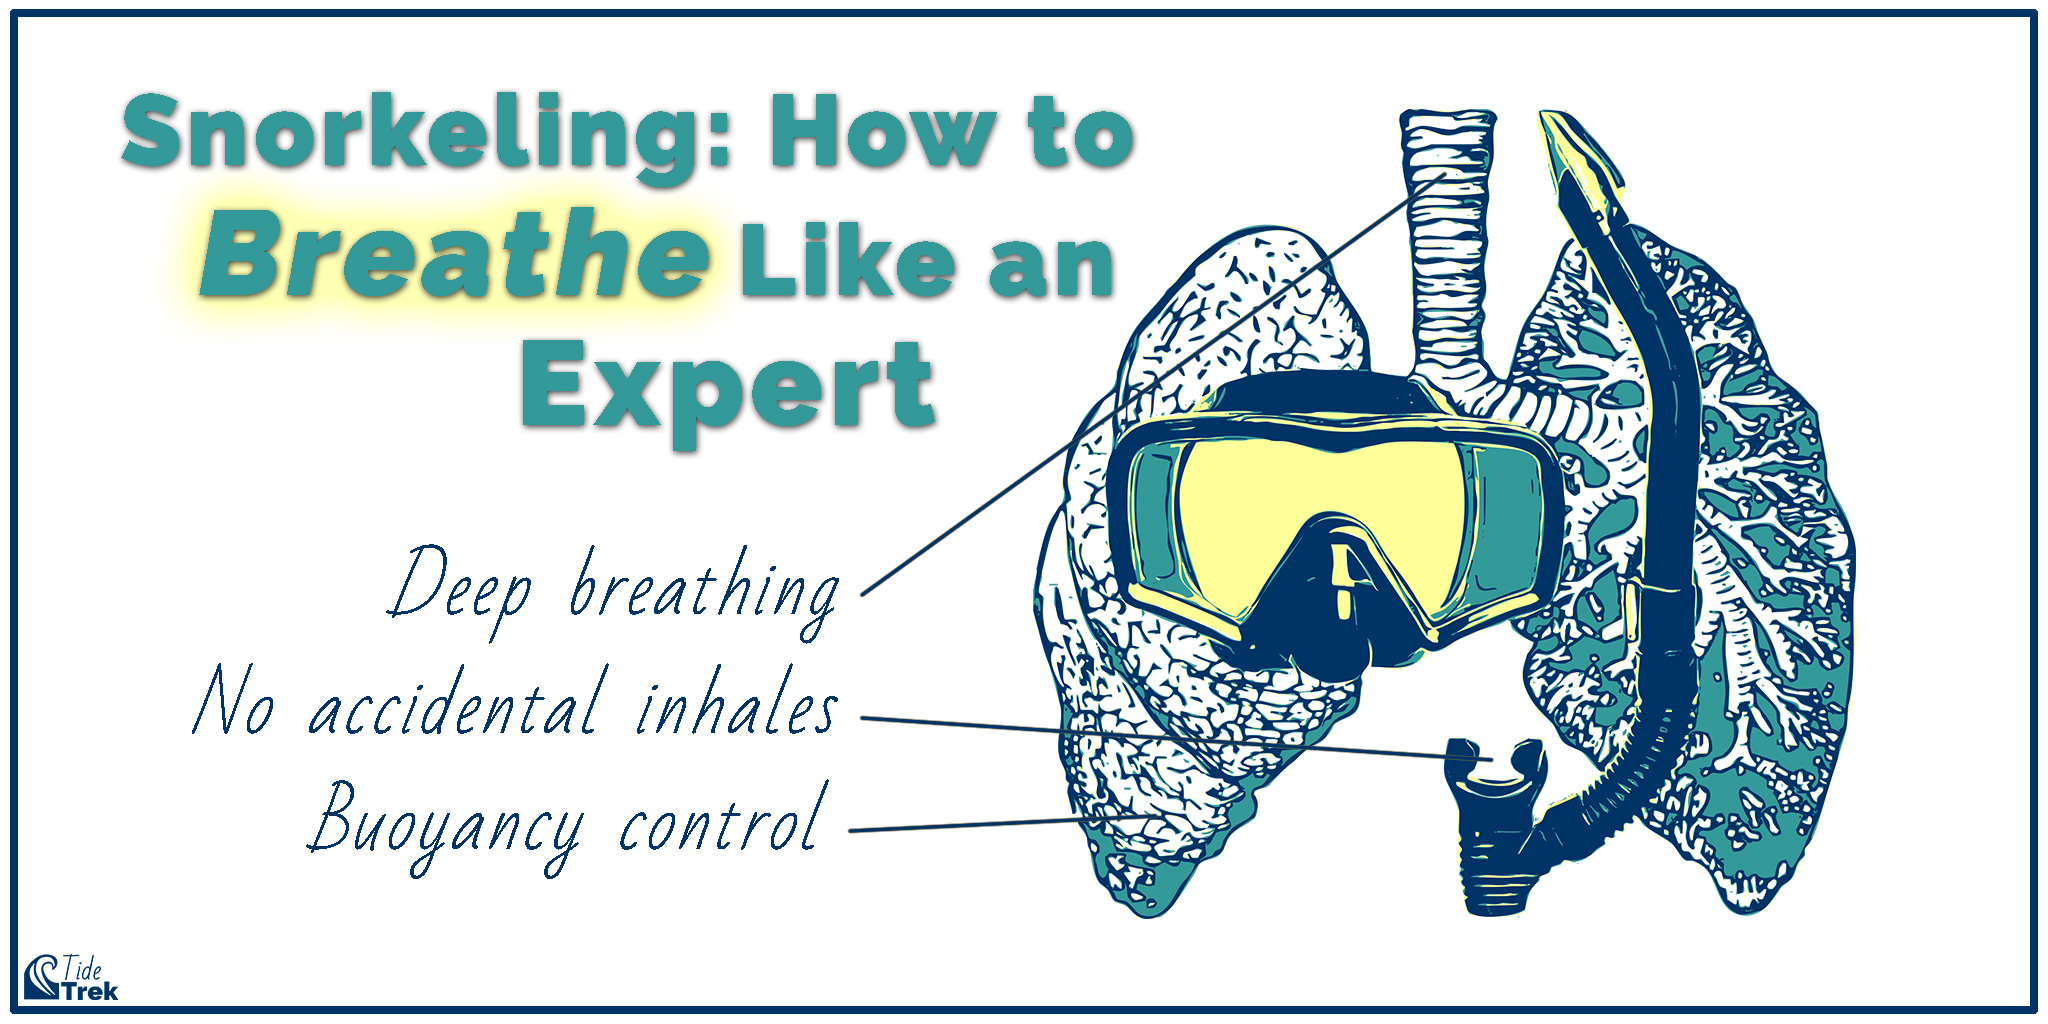 Snorkeling: How to Breathe Like an Expert